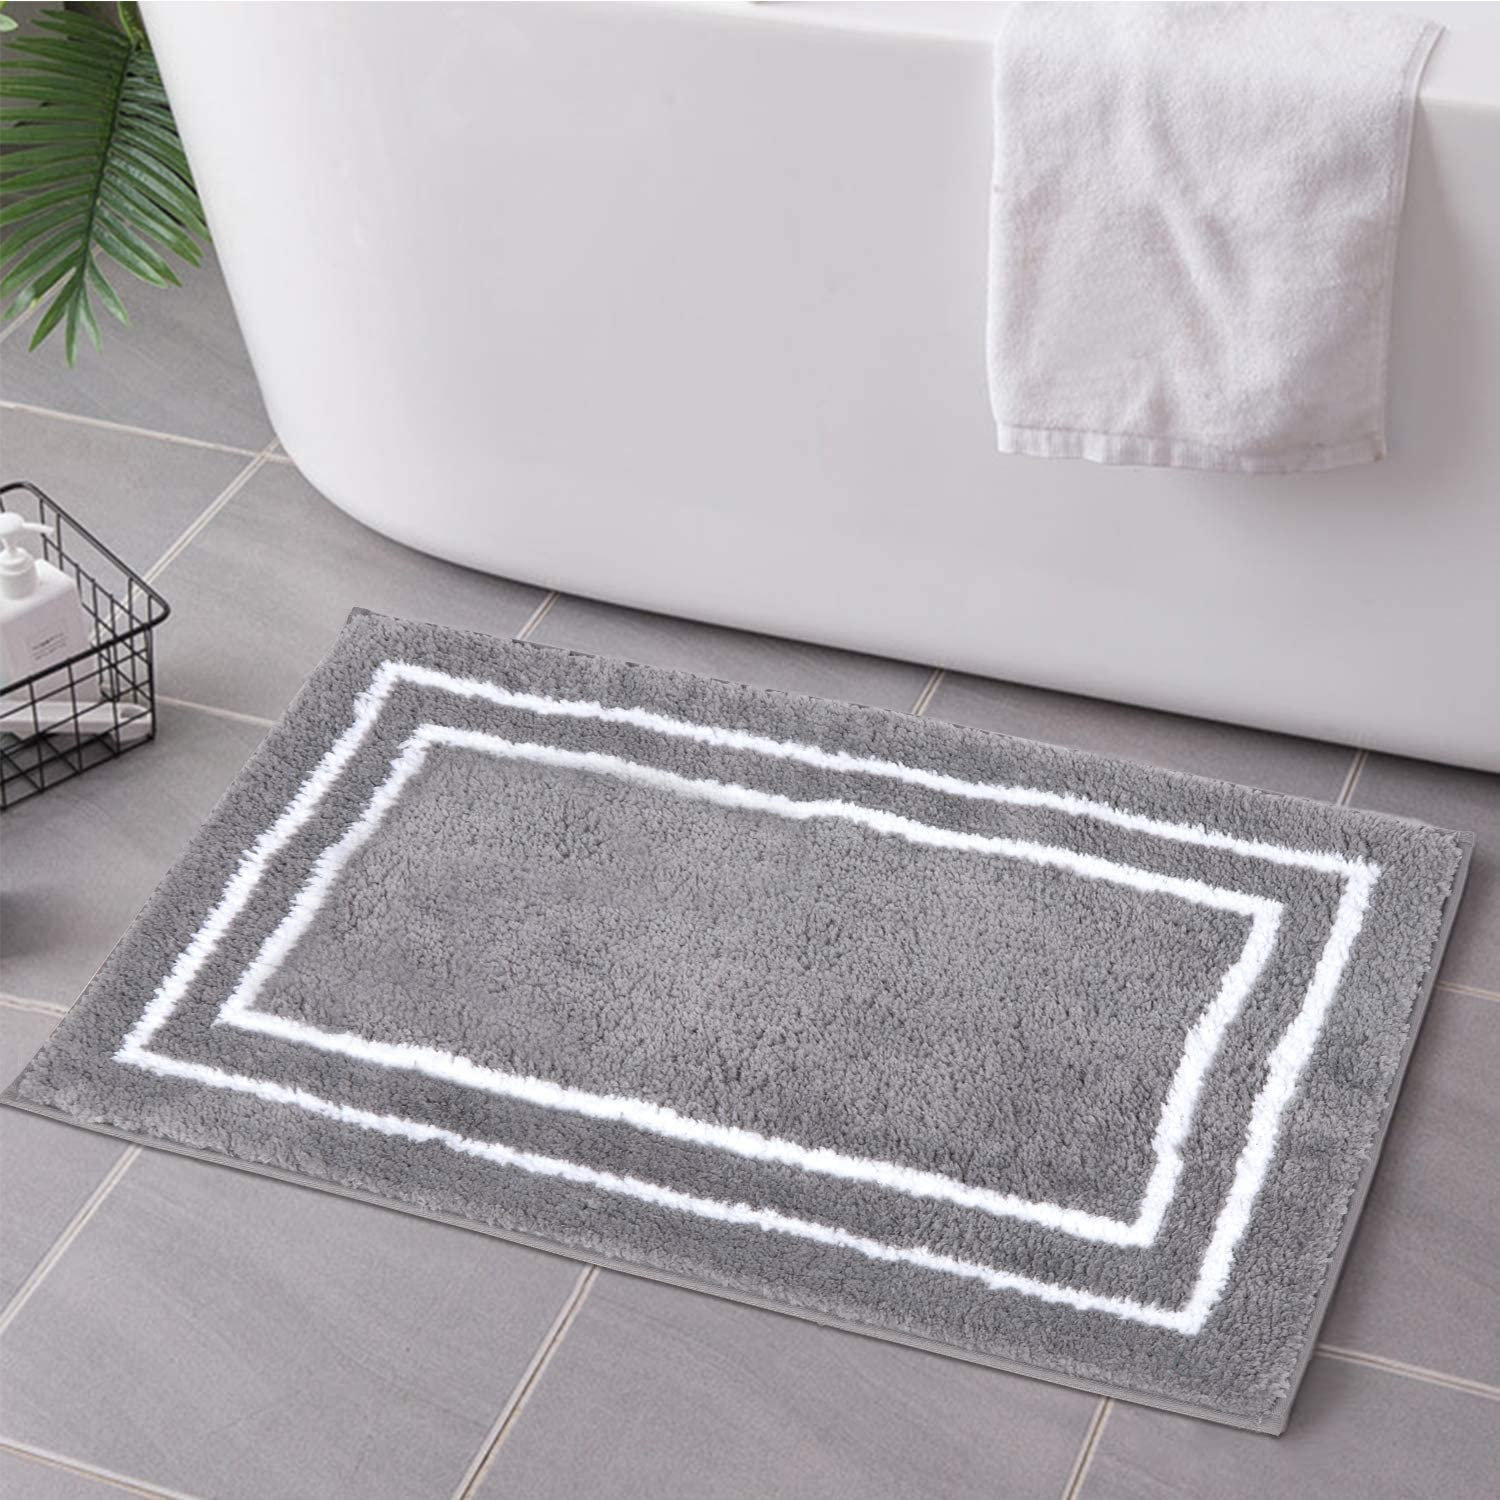 Uphome Bathroom Rugs Non-Slip Gray Banded Shaggy Bath Mat 18x24 inch Luxury Machine Washable Bath Rug Soft Microfiber Water Absorbent Floor Rugs for Shower Bathtub